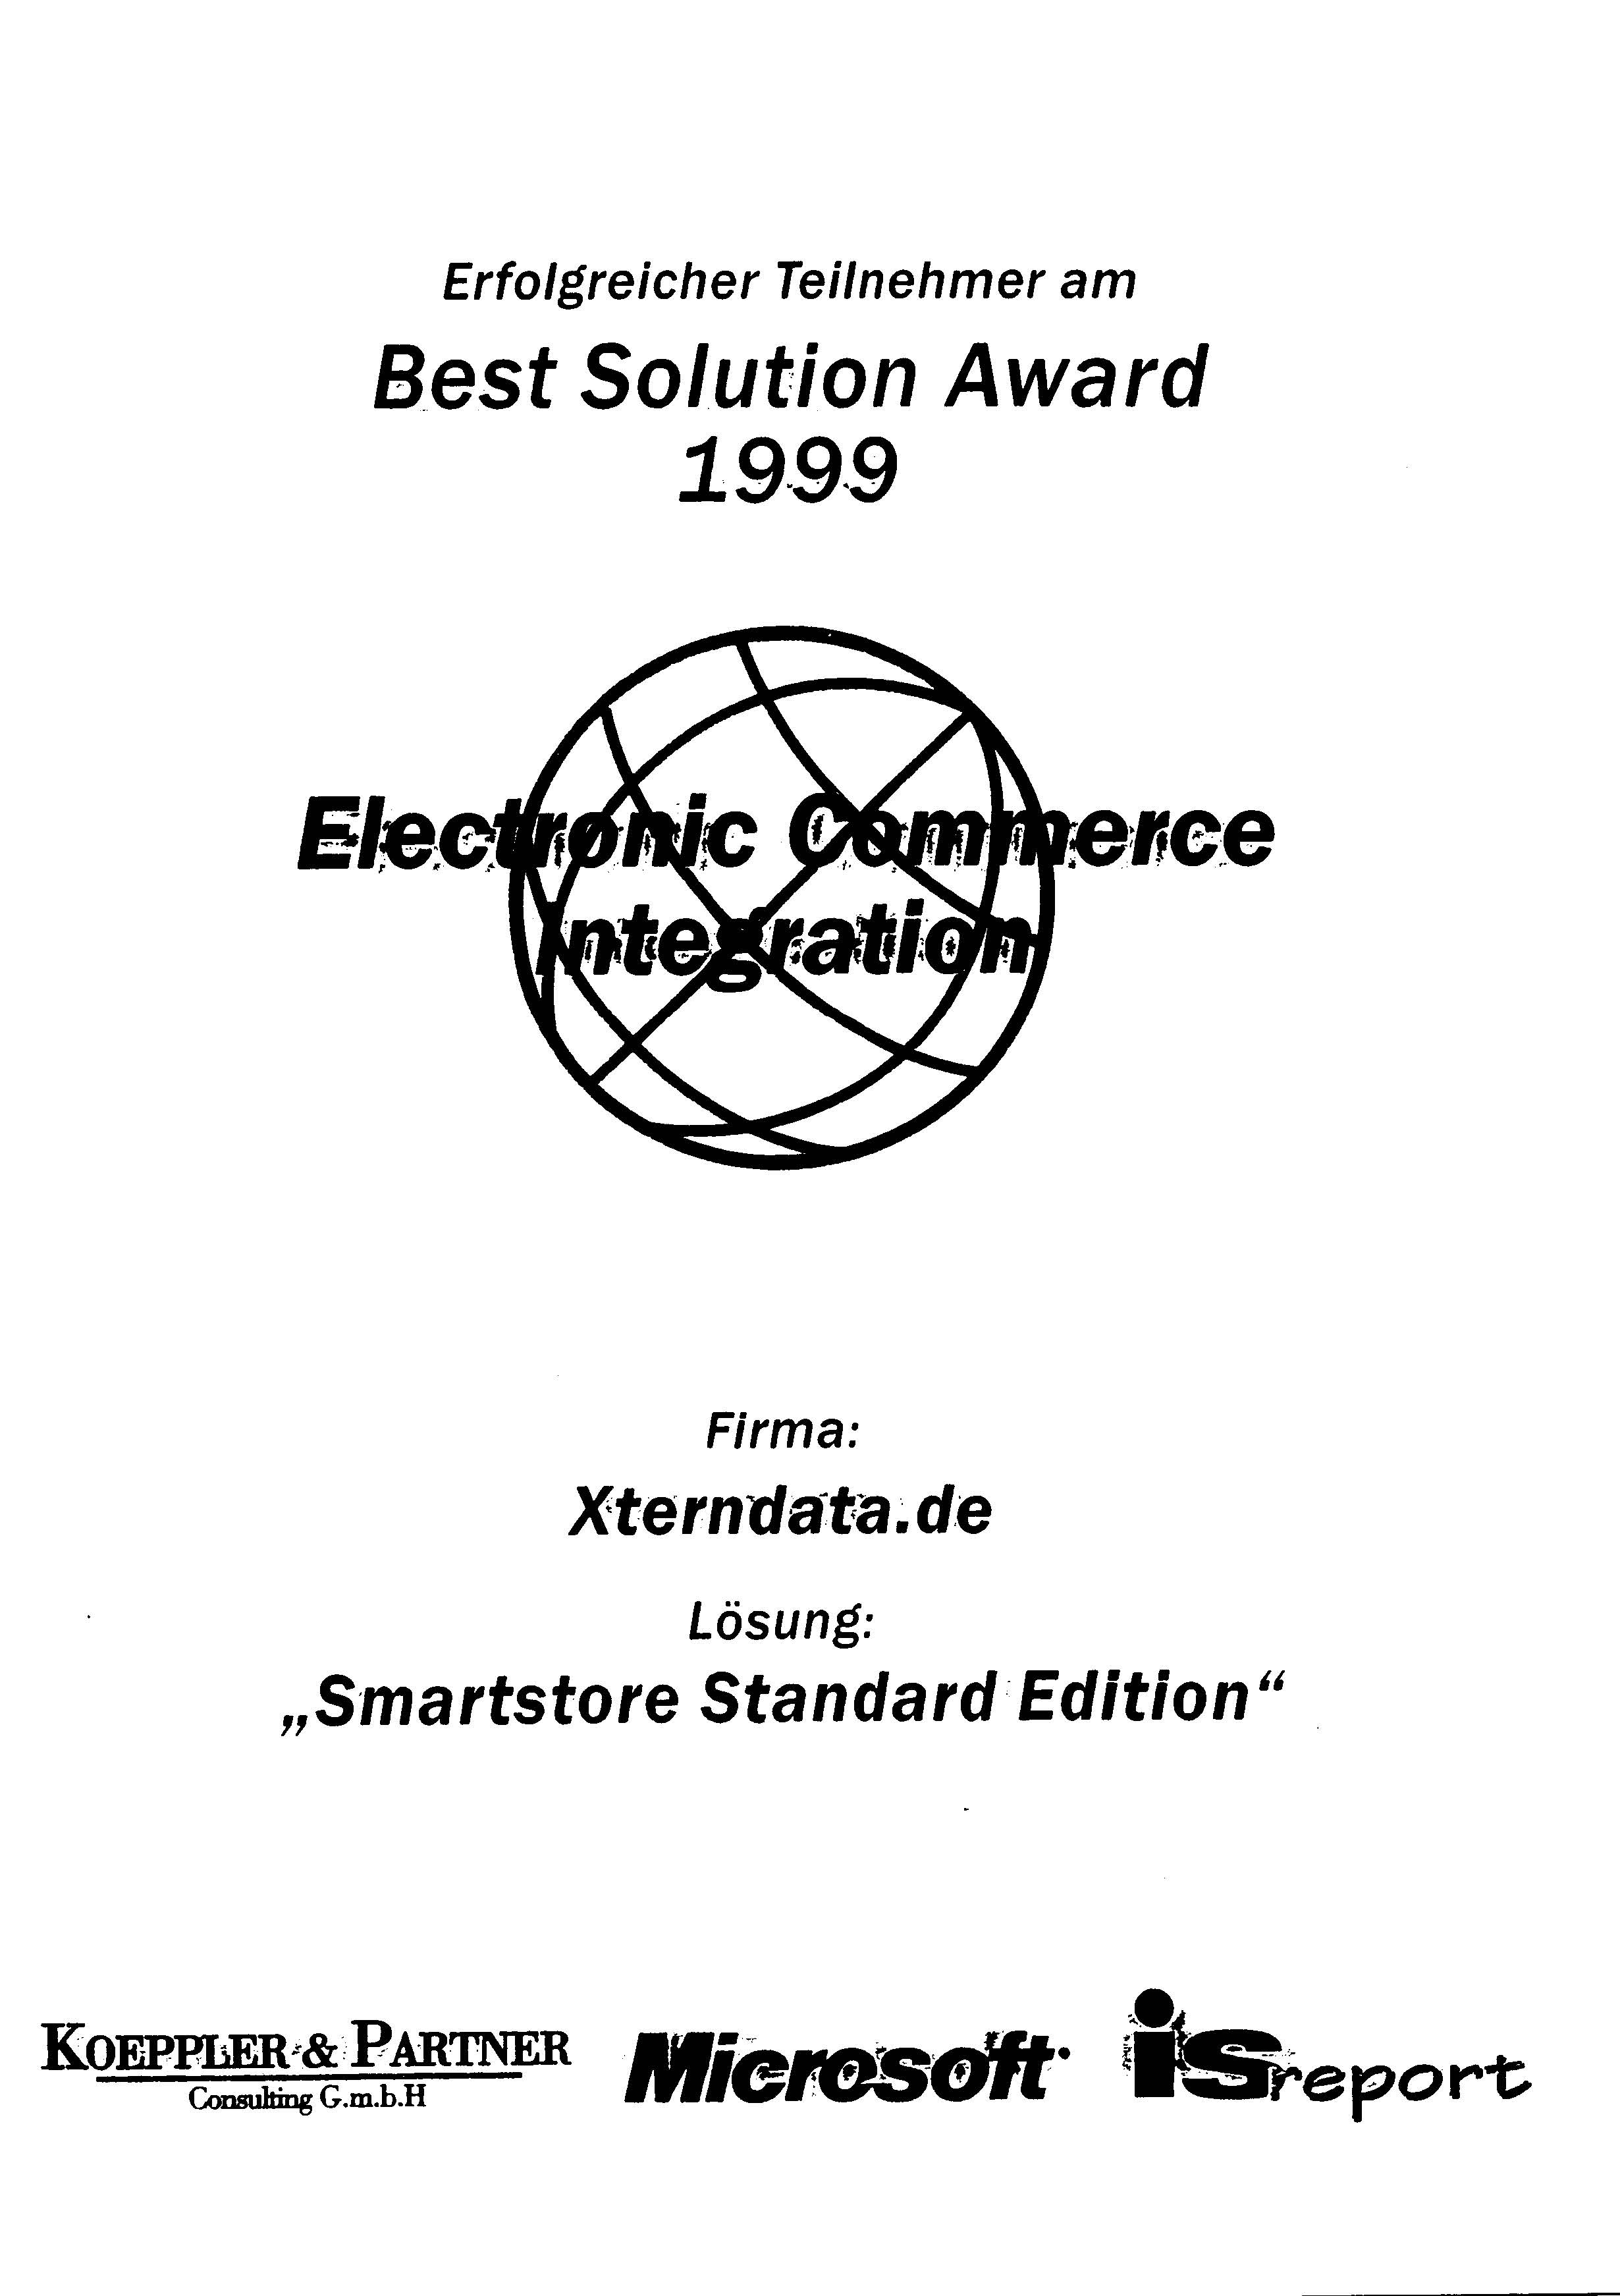 Presentation of the Best Solutions Award 1999 for eCommerce Integration by Microsoft